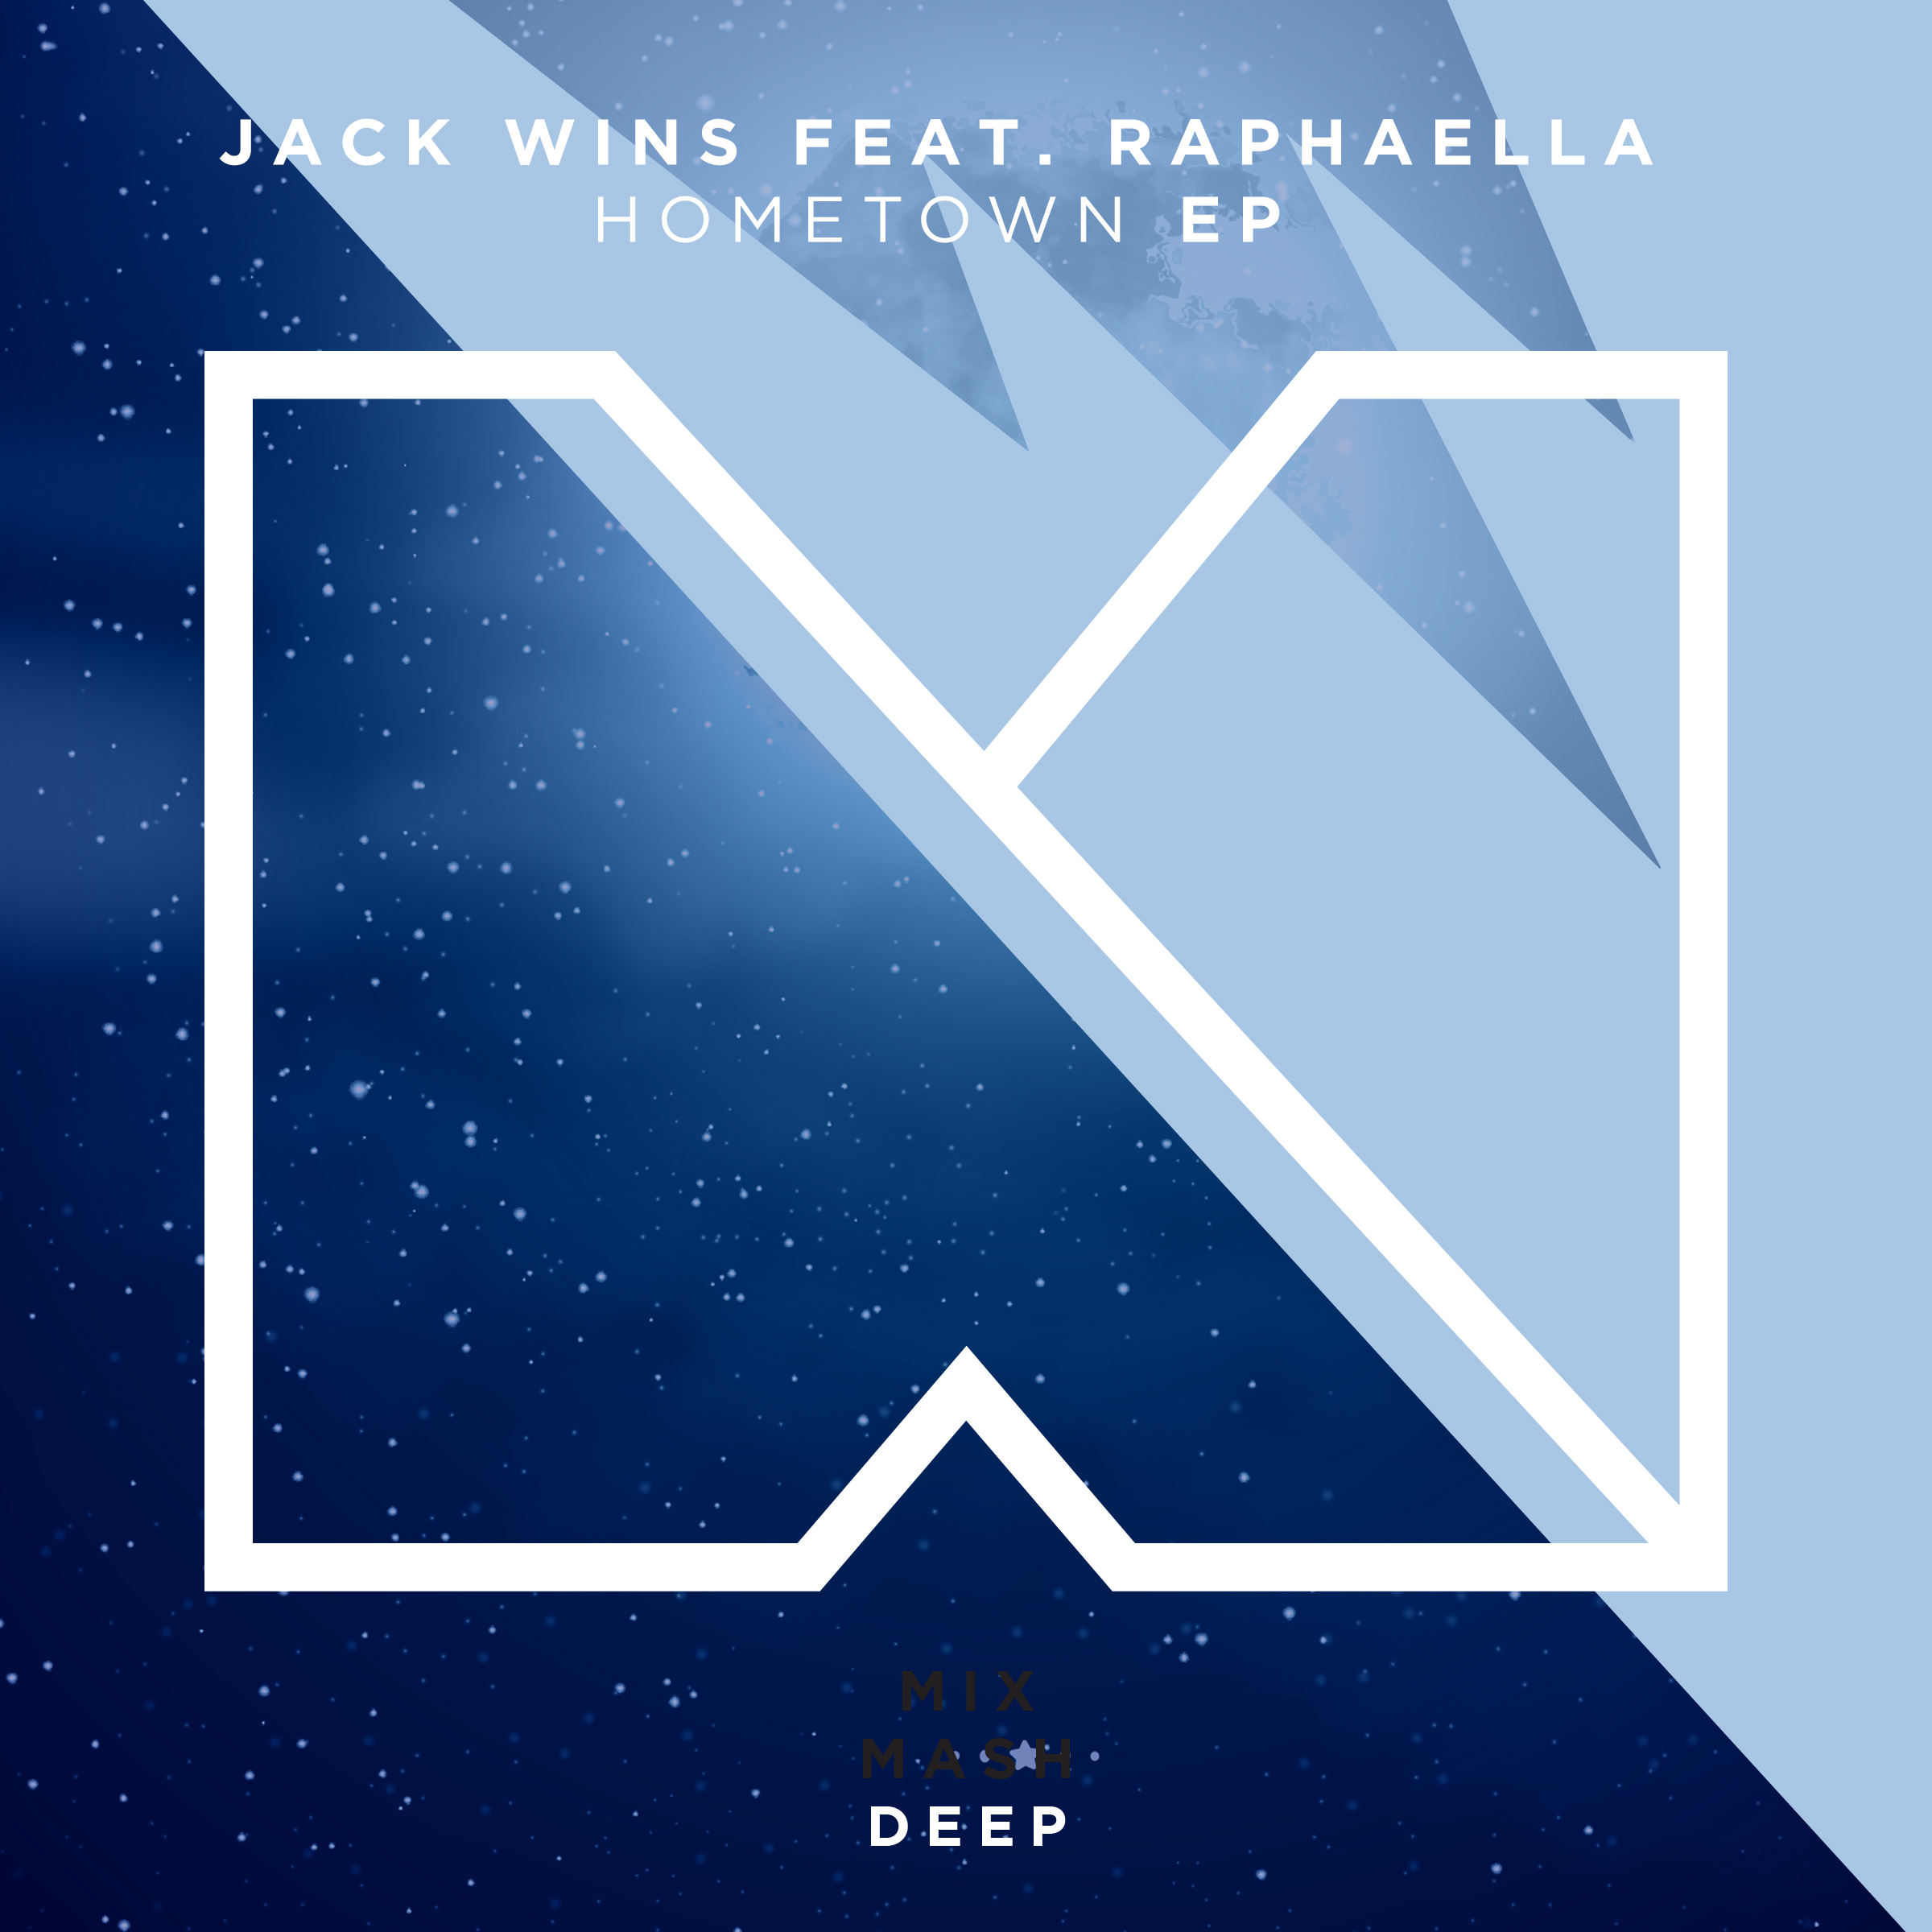 Jack Wins Ft. Raphaella Hometown